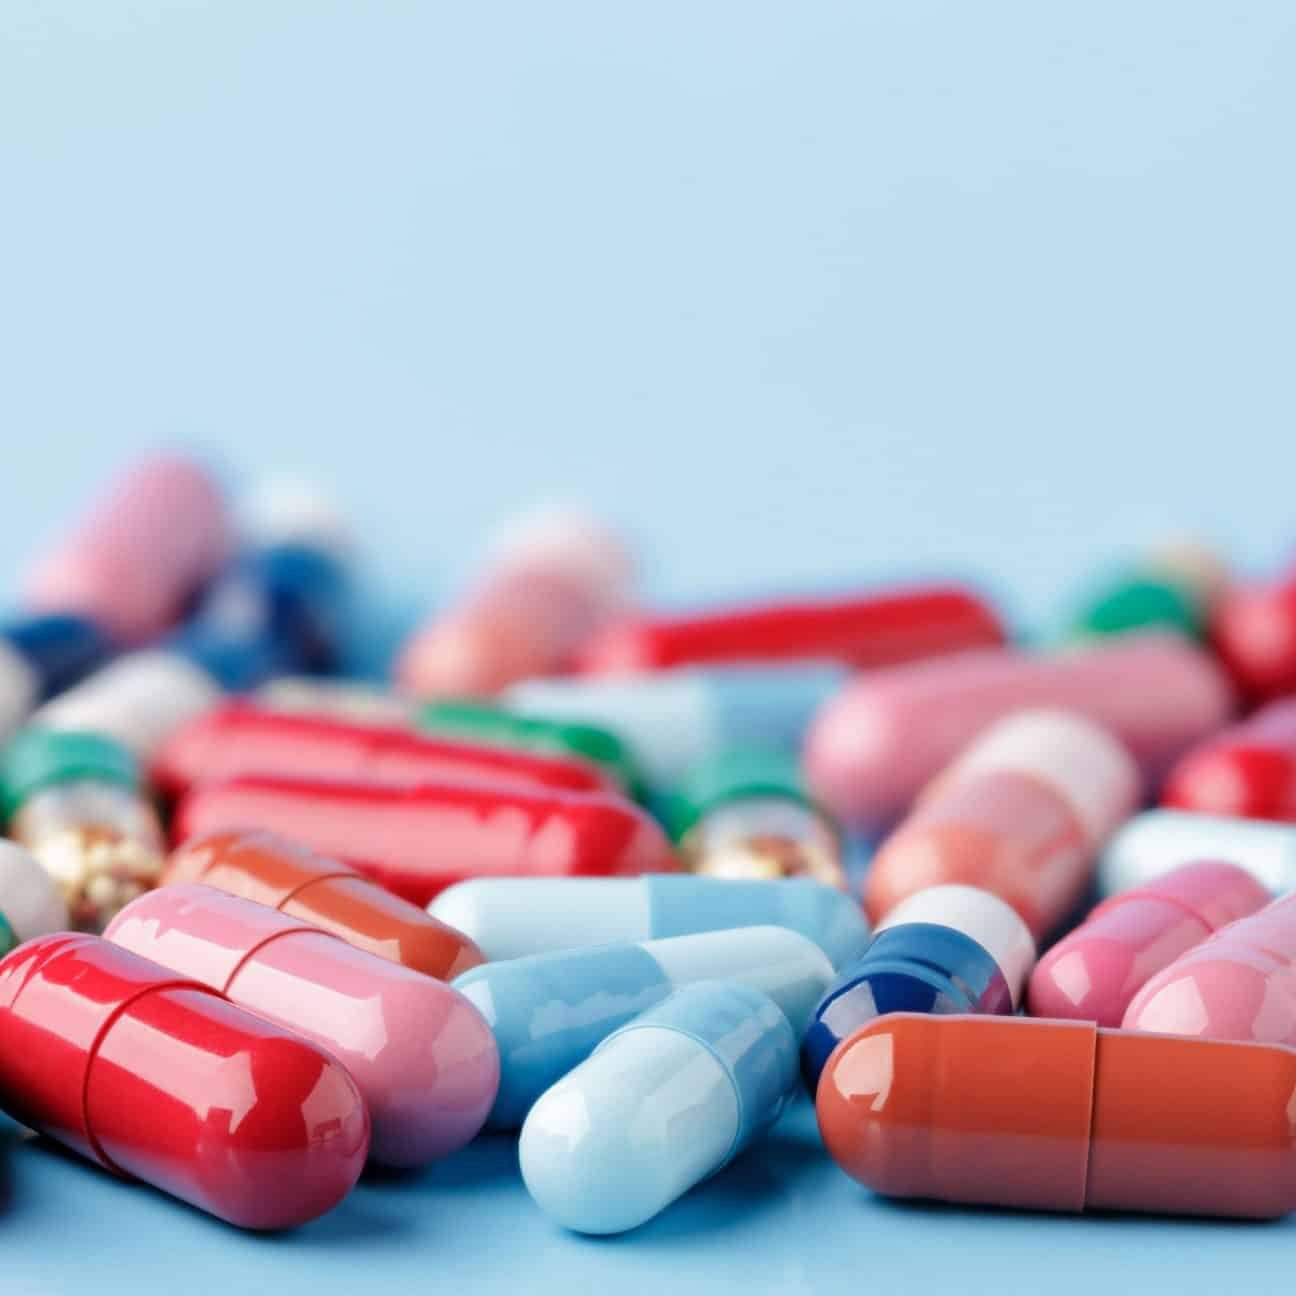 Prescription Pills That Shouldn't Be Taken While Driving